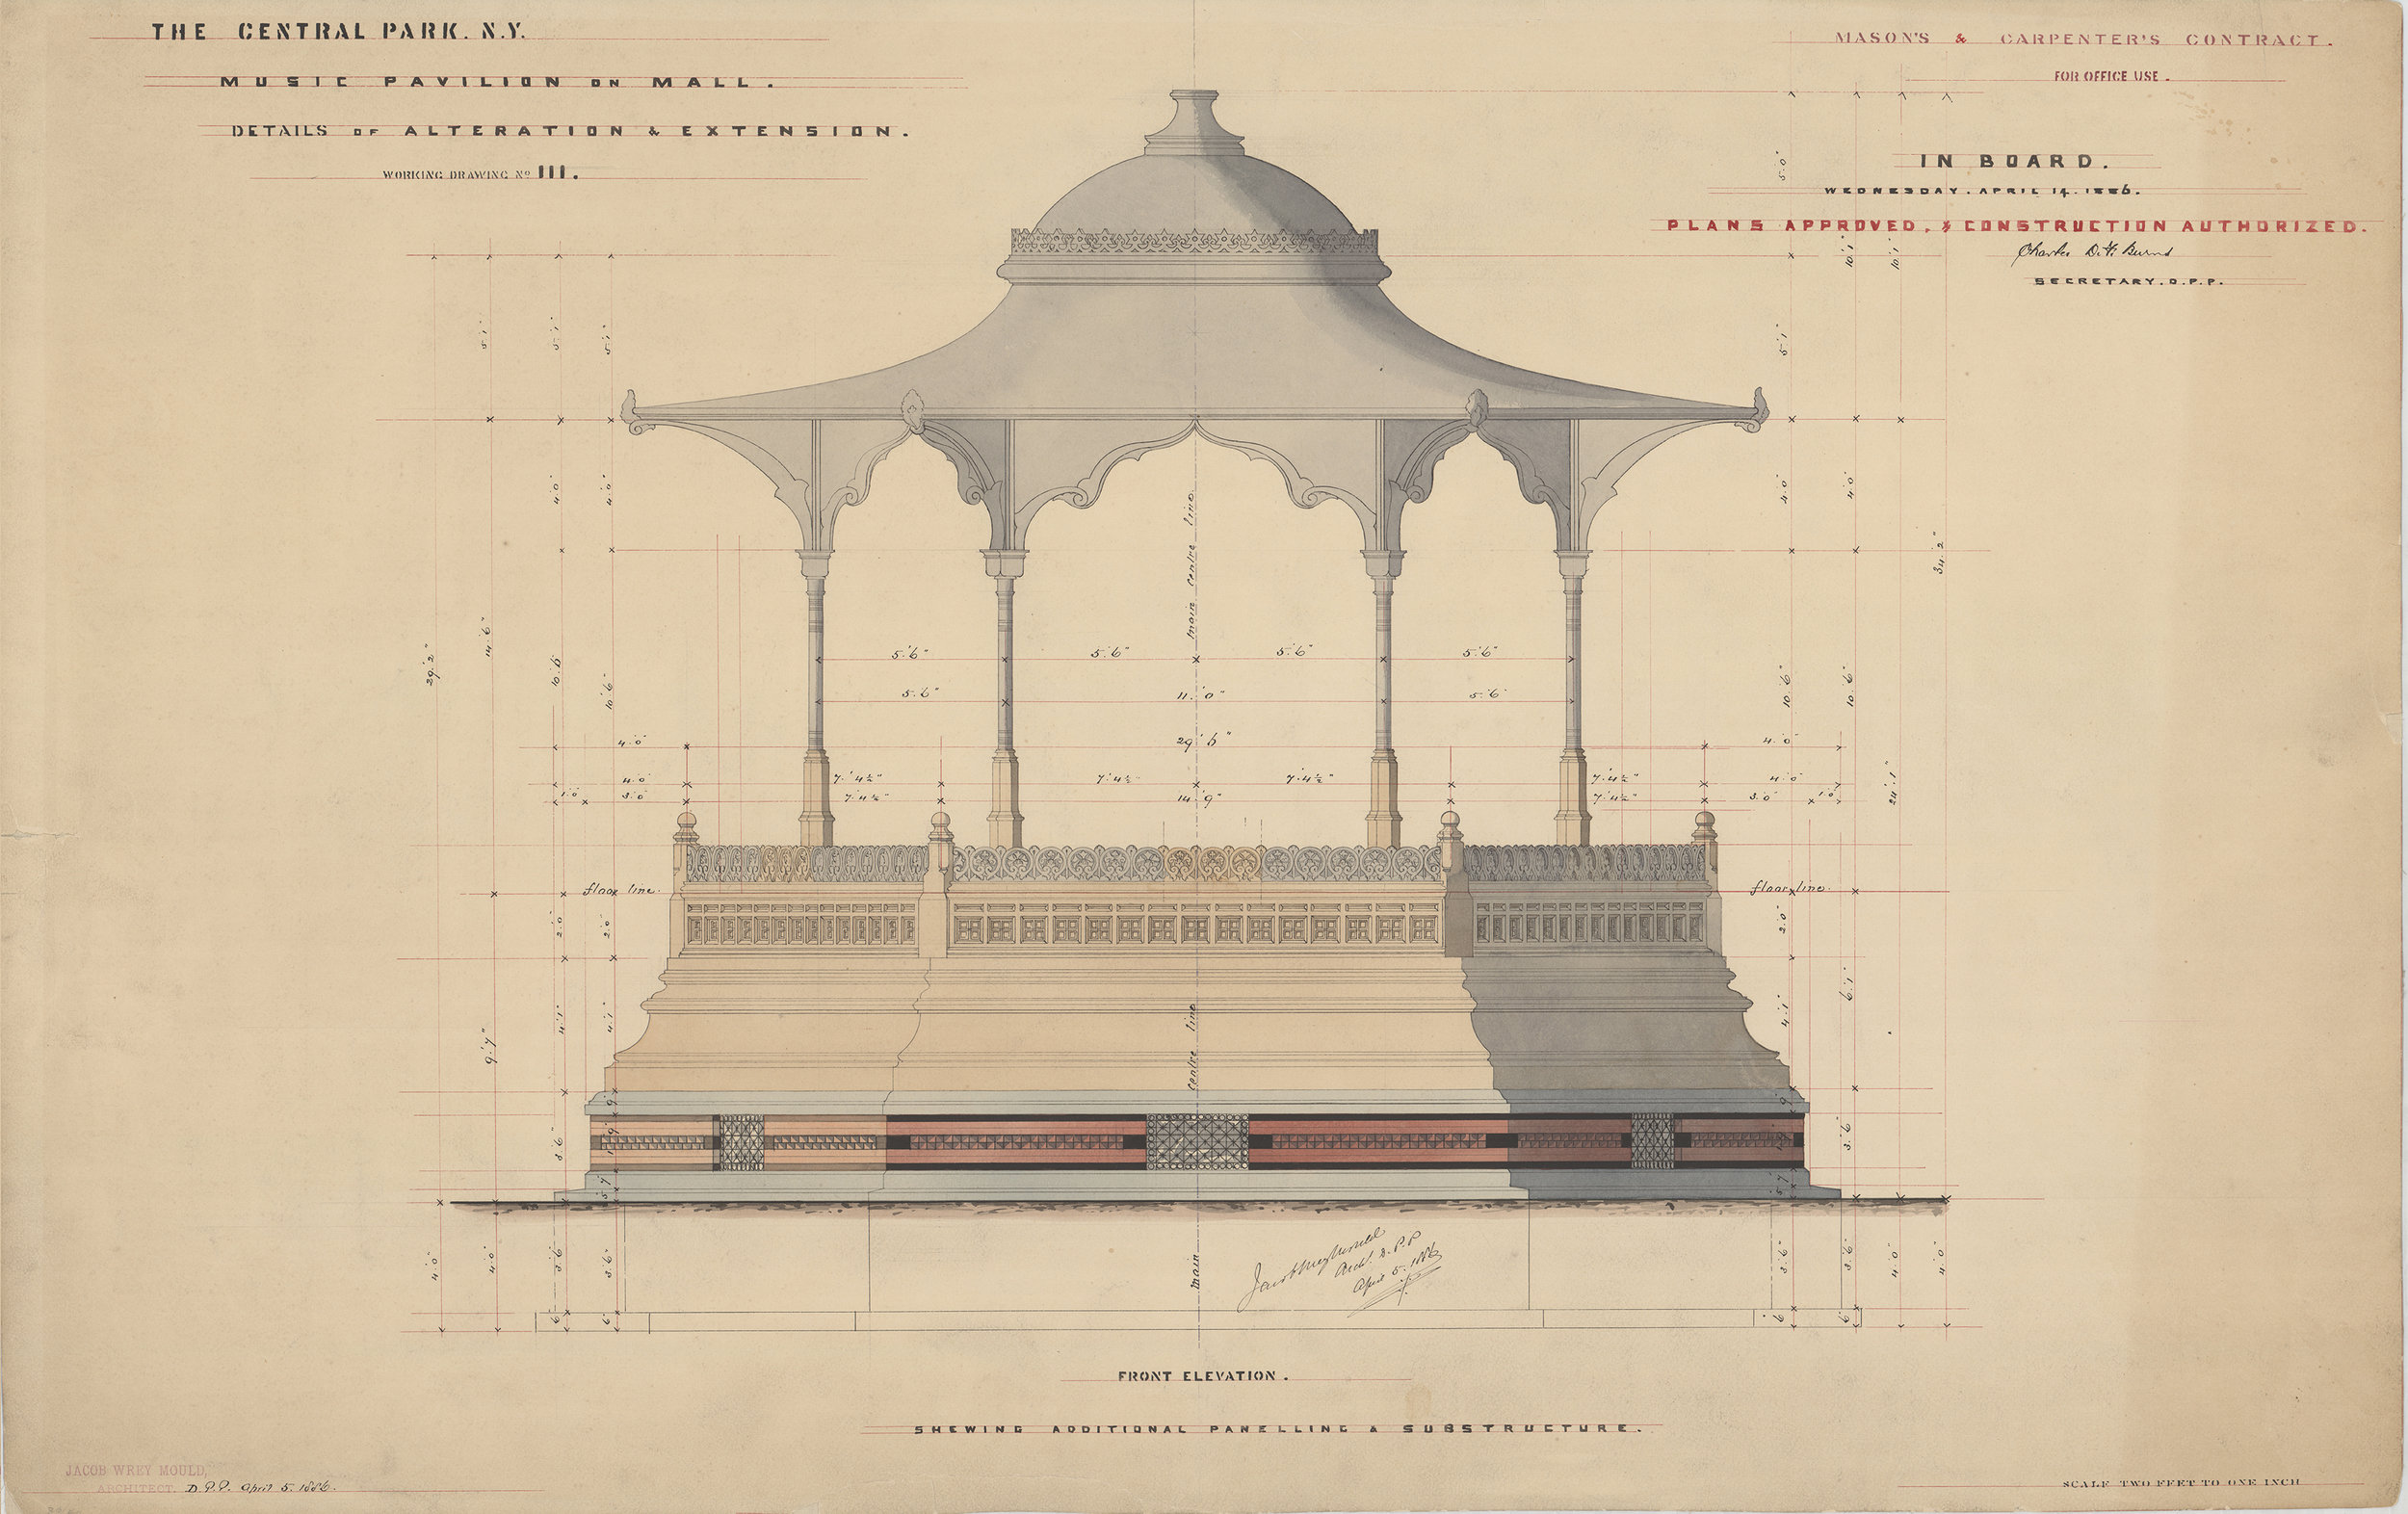 "Alterations to Music Pavilion, mason's and carpenter's contract, 1886. Black and colored inks with colored washes on paper backed with linen, 23¾ x 34¾"". Department of Parks Collection, NYC Municipal Archives.  The vividly colored Music Pavilion was originally constructed in 1862 and was moved to several different locations on the Mall during its lifetime. Jacob Wrey Mould prepared this drawing for alterations to the structure in 1886."